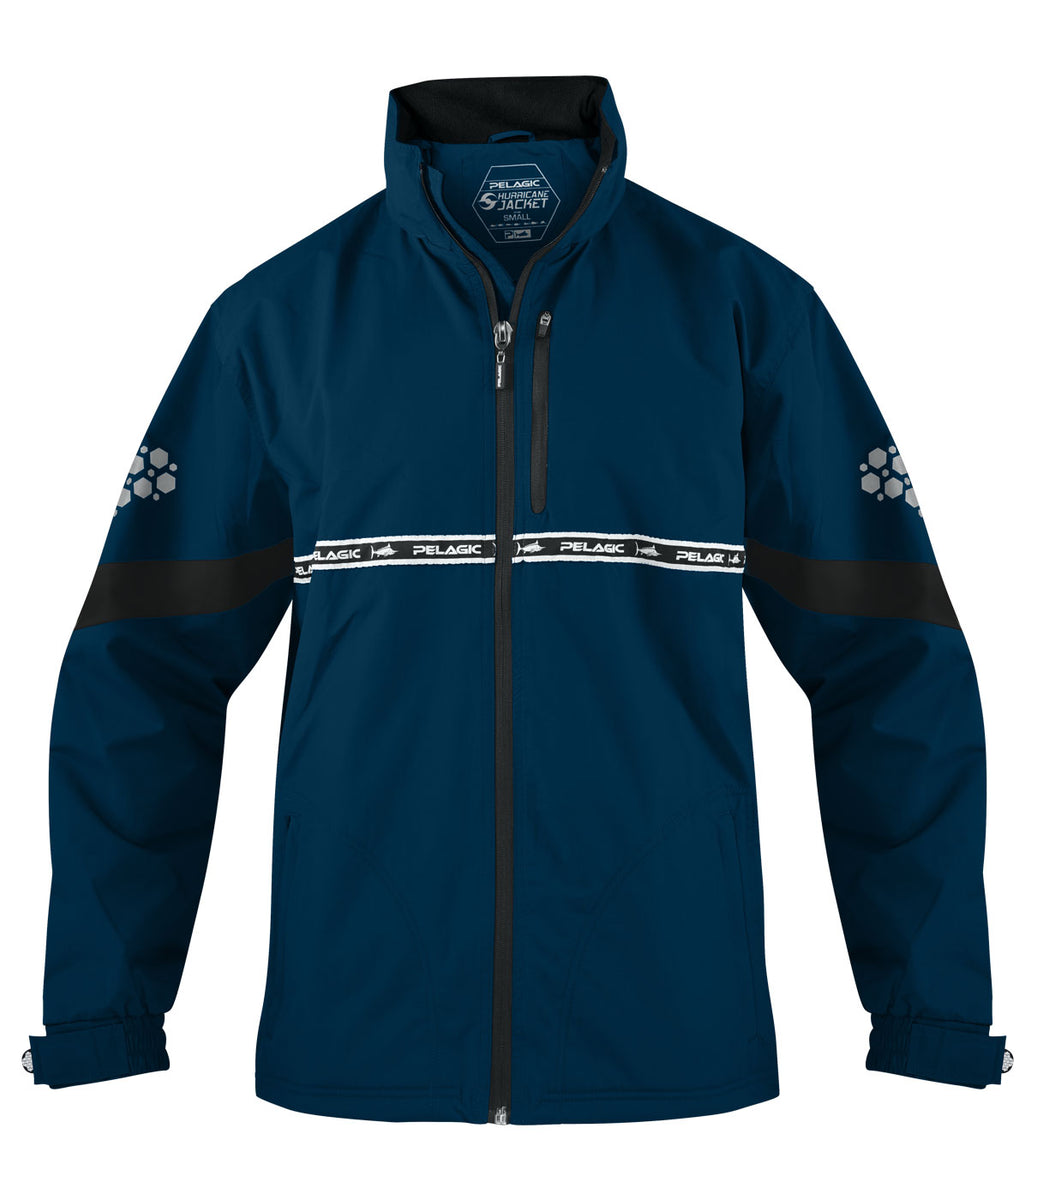 Hurricane Jacket Big Image - 1